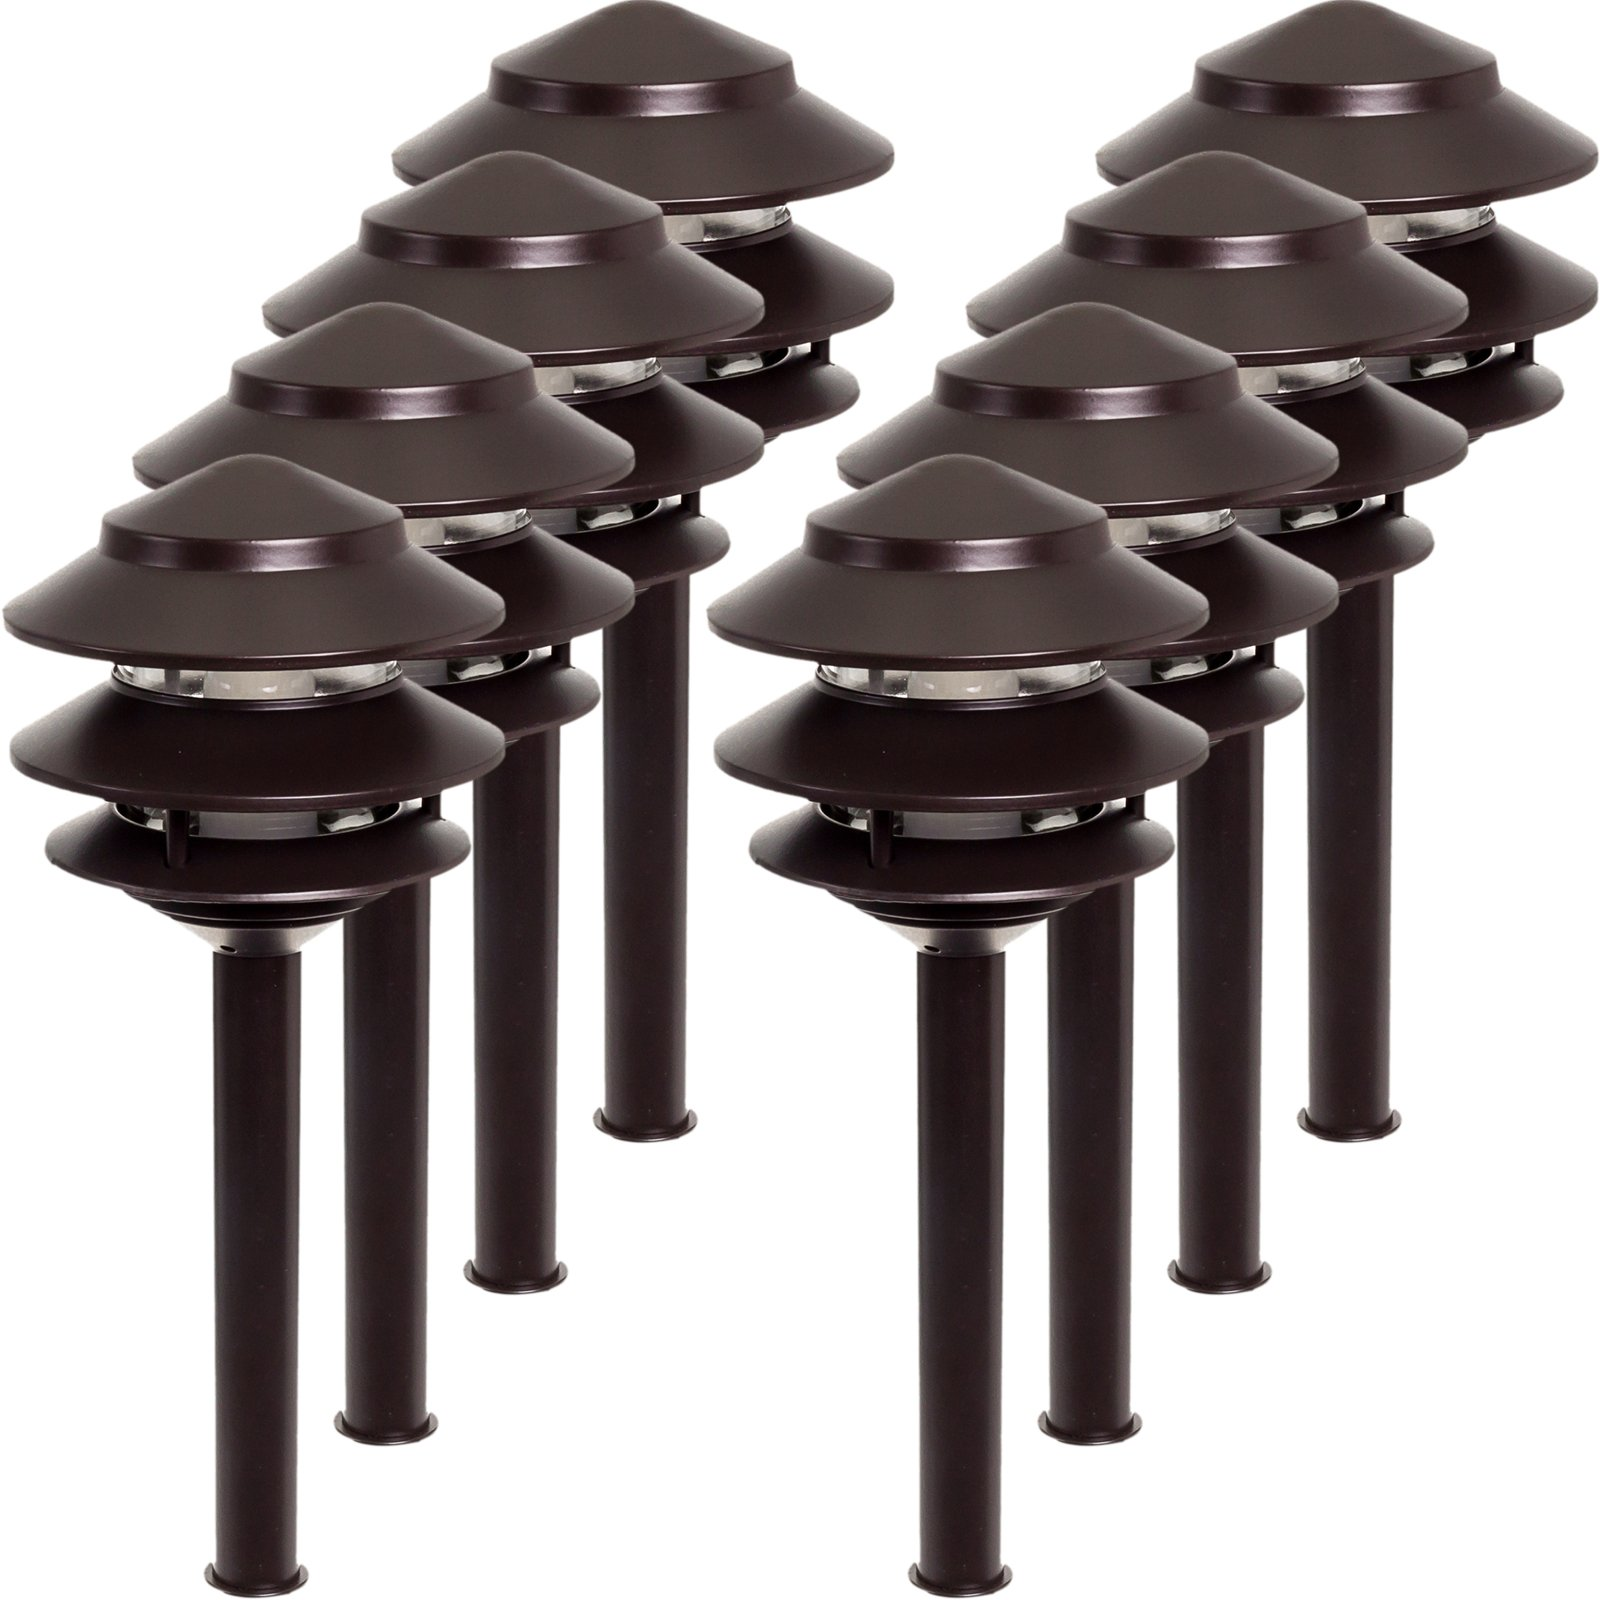 8 Pack Westinghouse 2.4W Low Voltage LED Landscape Pathlight (Remington Bronze)